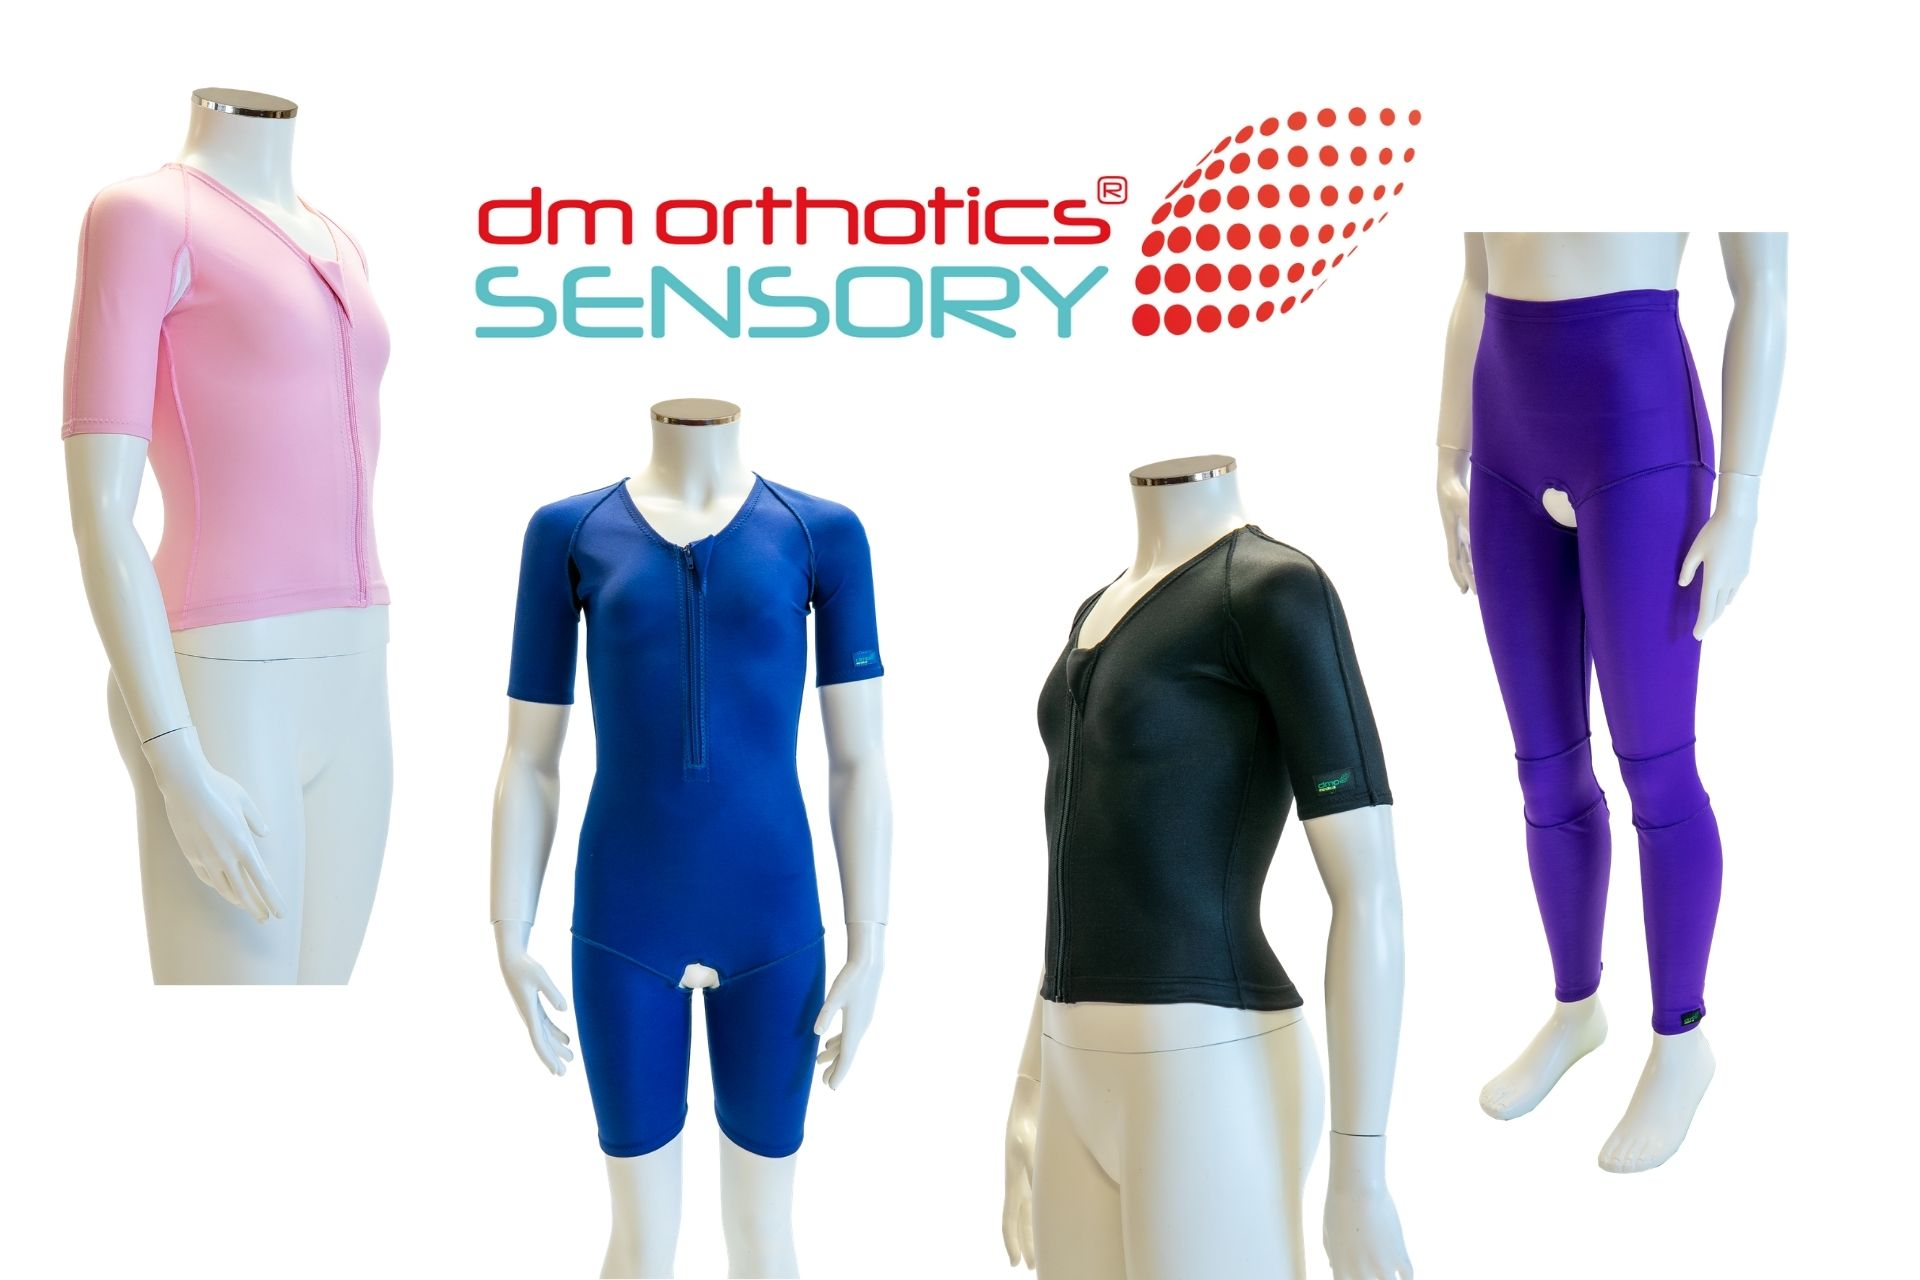 The new DMO Sensory vest, suit and leggings